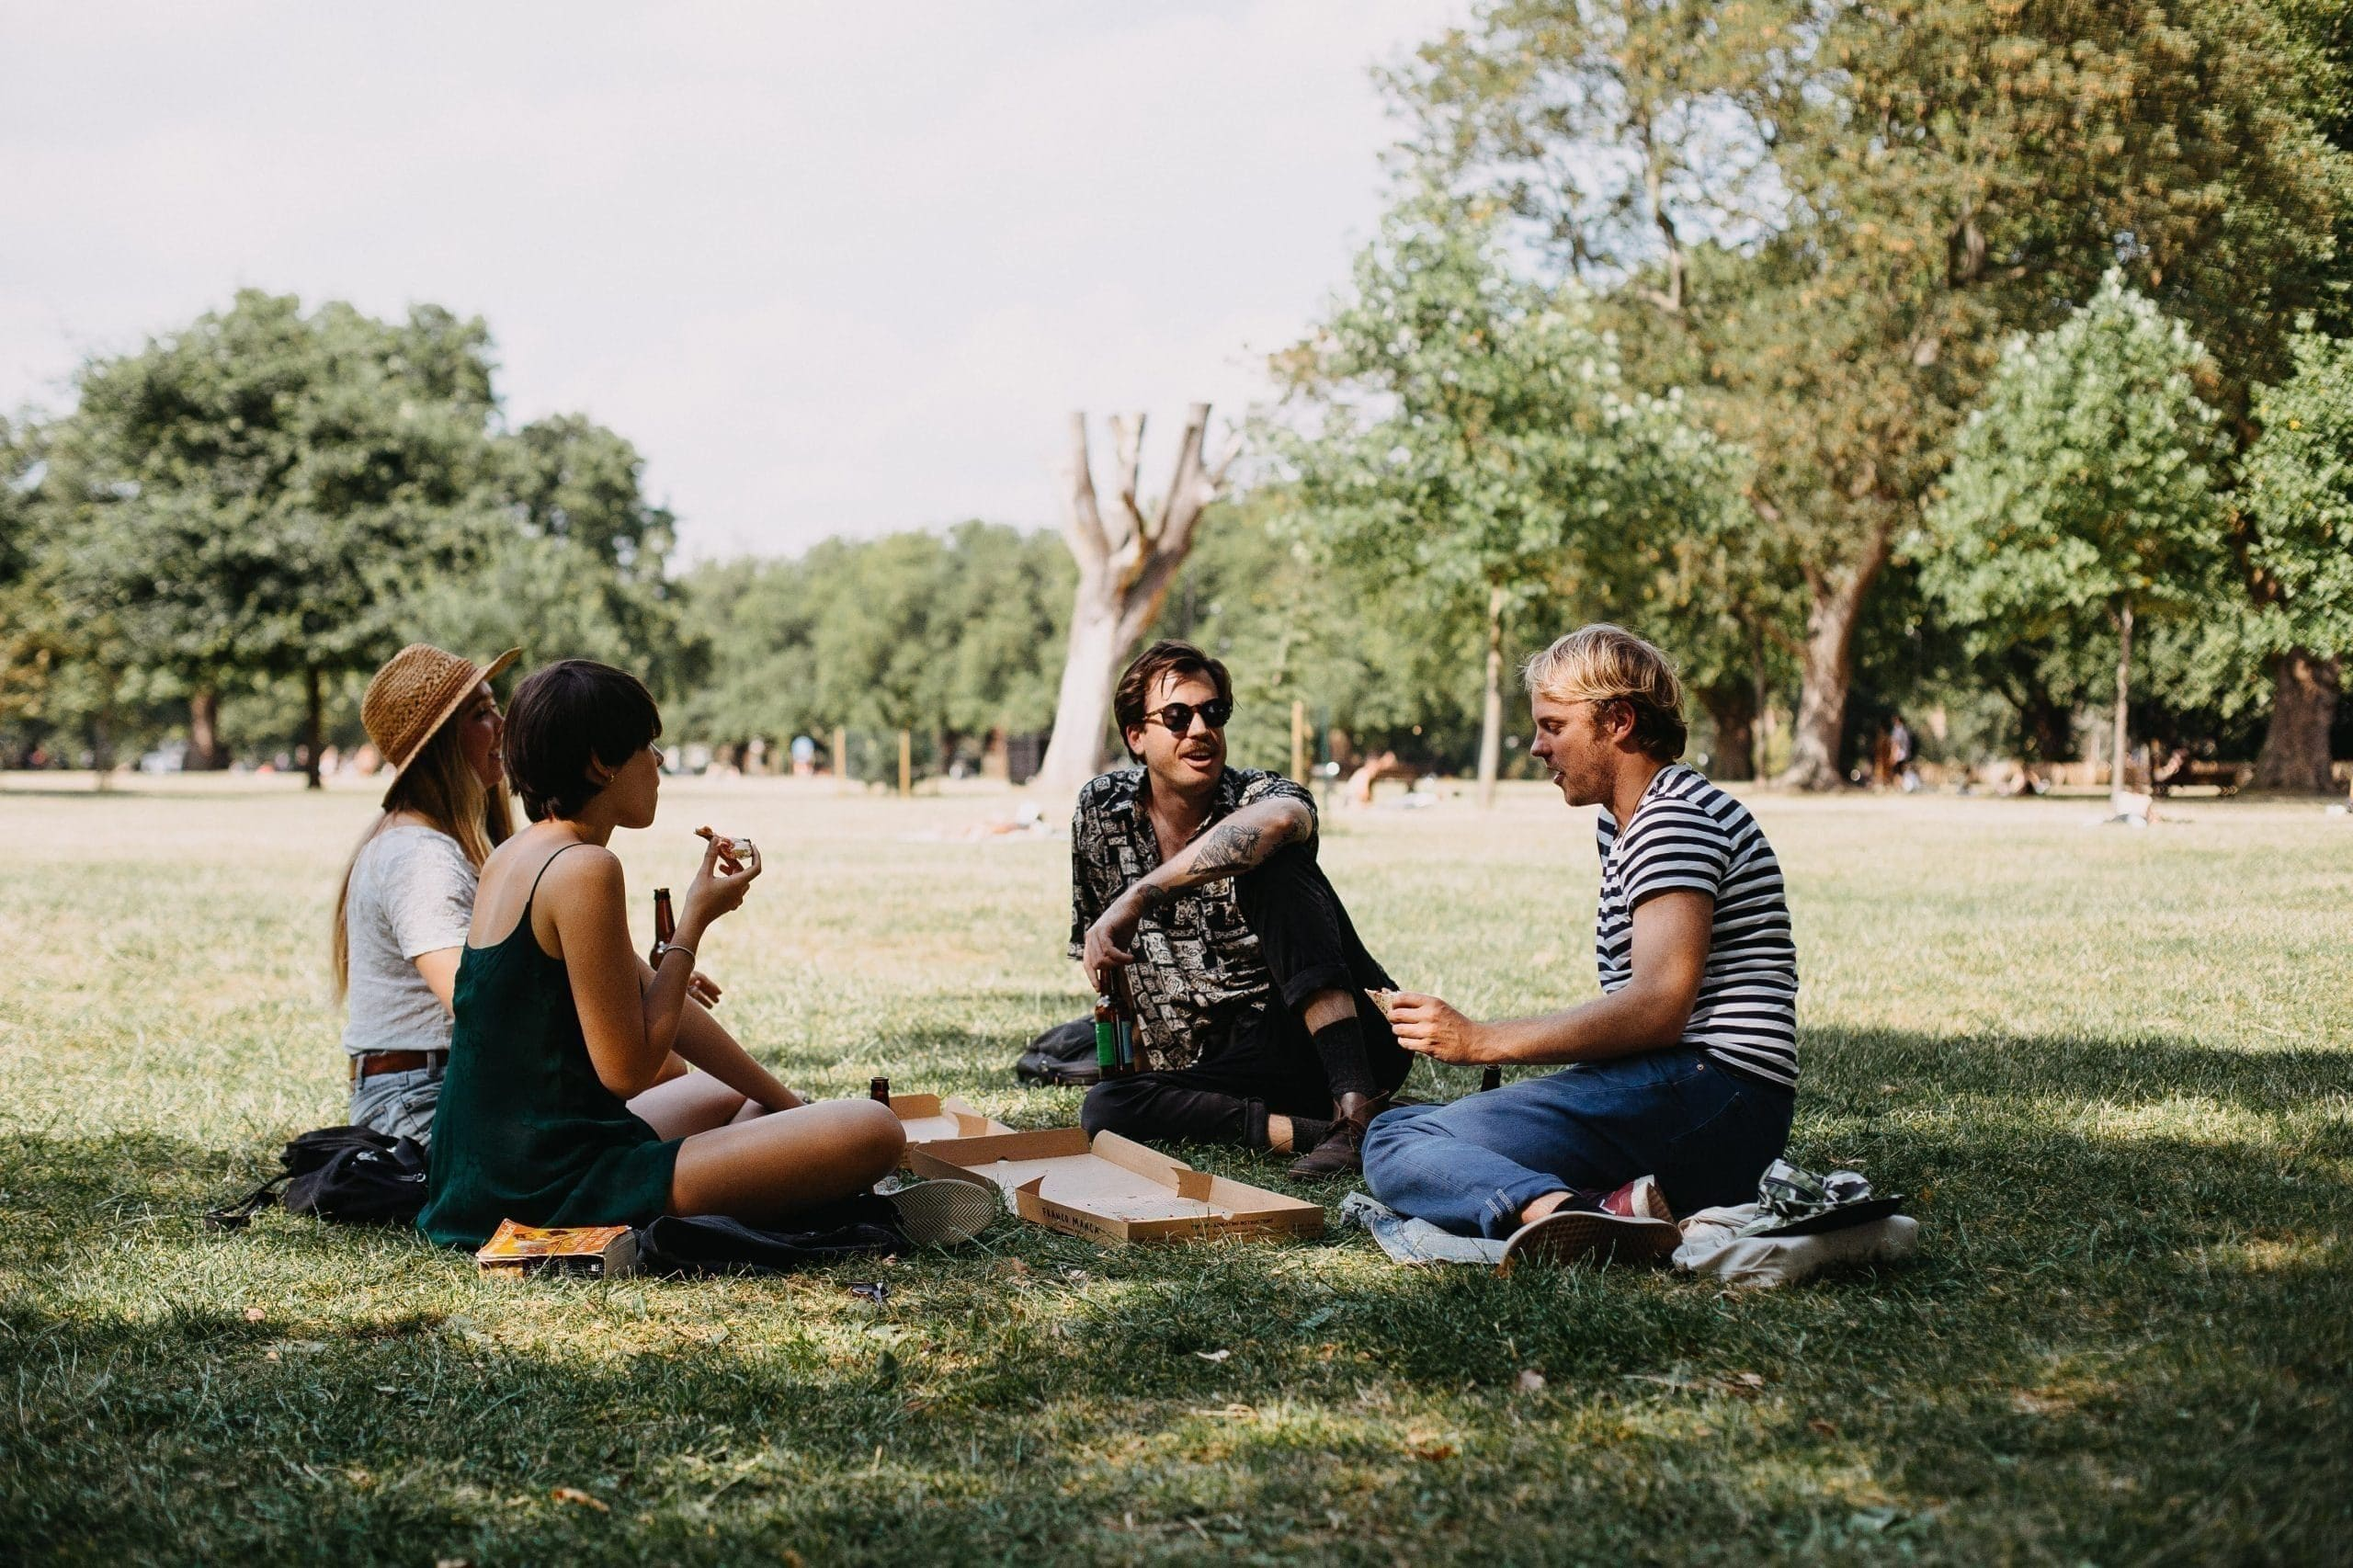 Young people having a picnic in the park